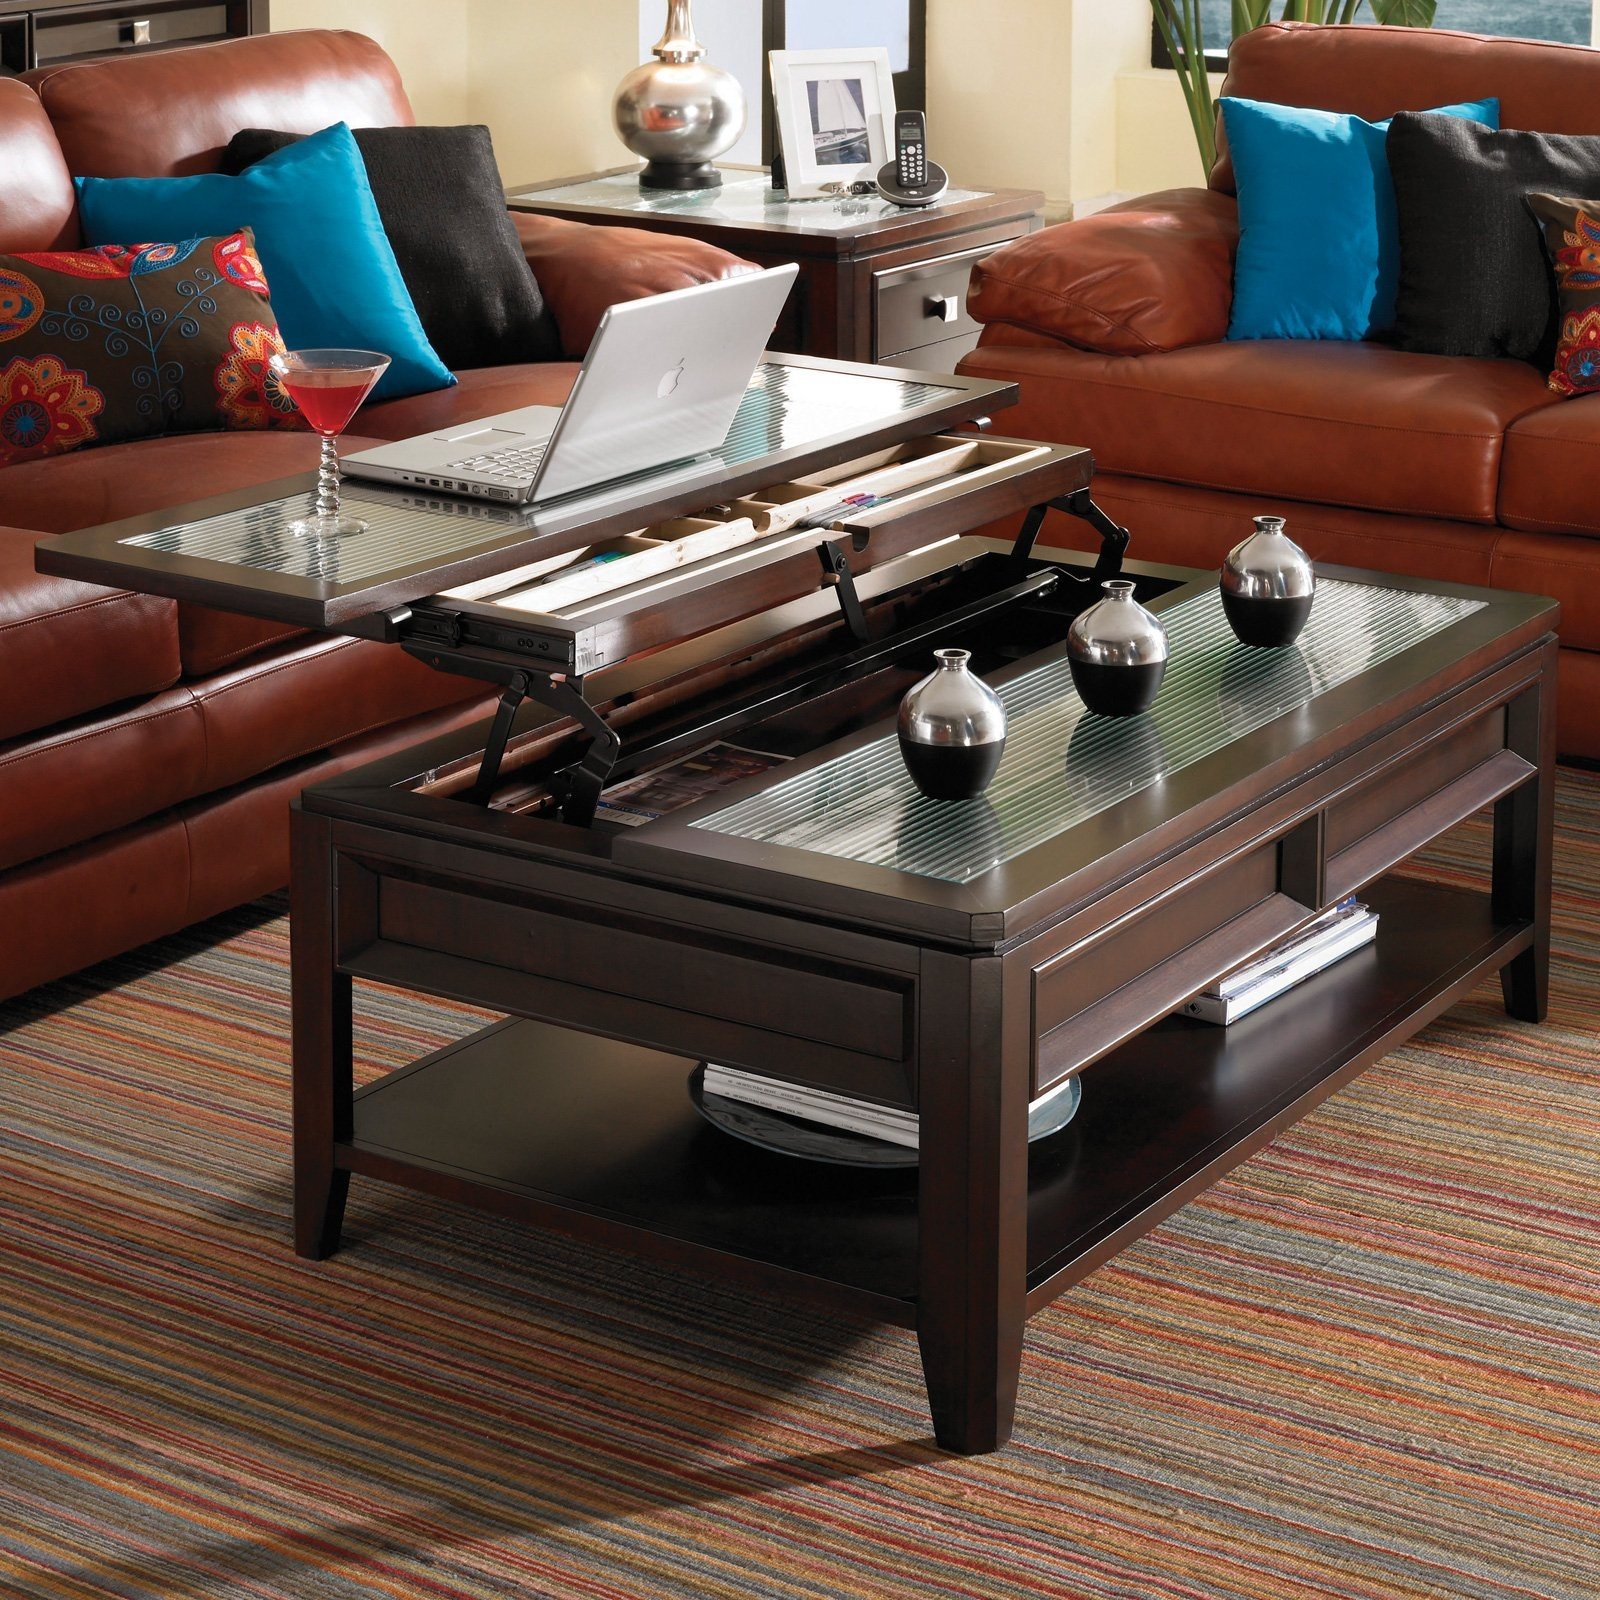 Lift Table Coffee Table: There's Something New Brewing In The World Of Decorating